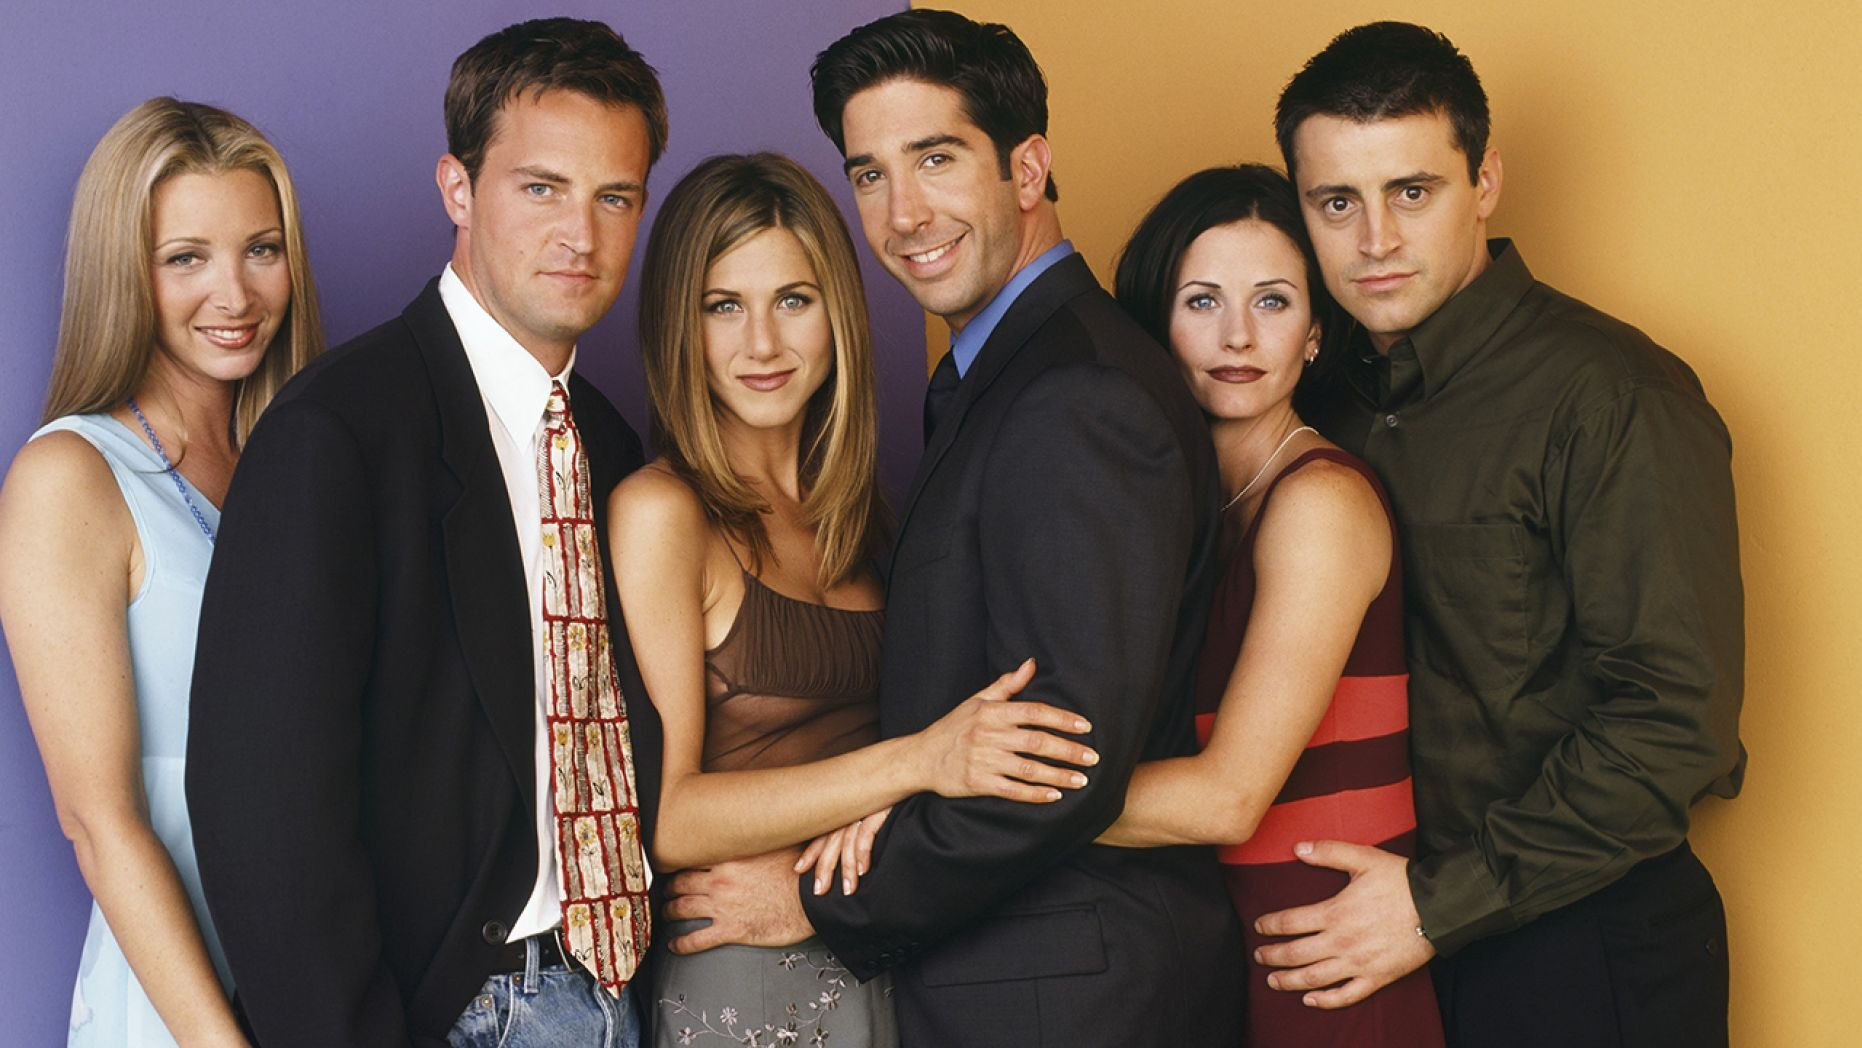 Jennifer Aniston's 'Friends' co-stars Courteney Cox, David Schwimmer welcome her to Instagram